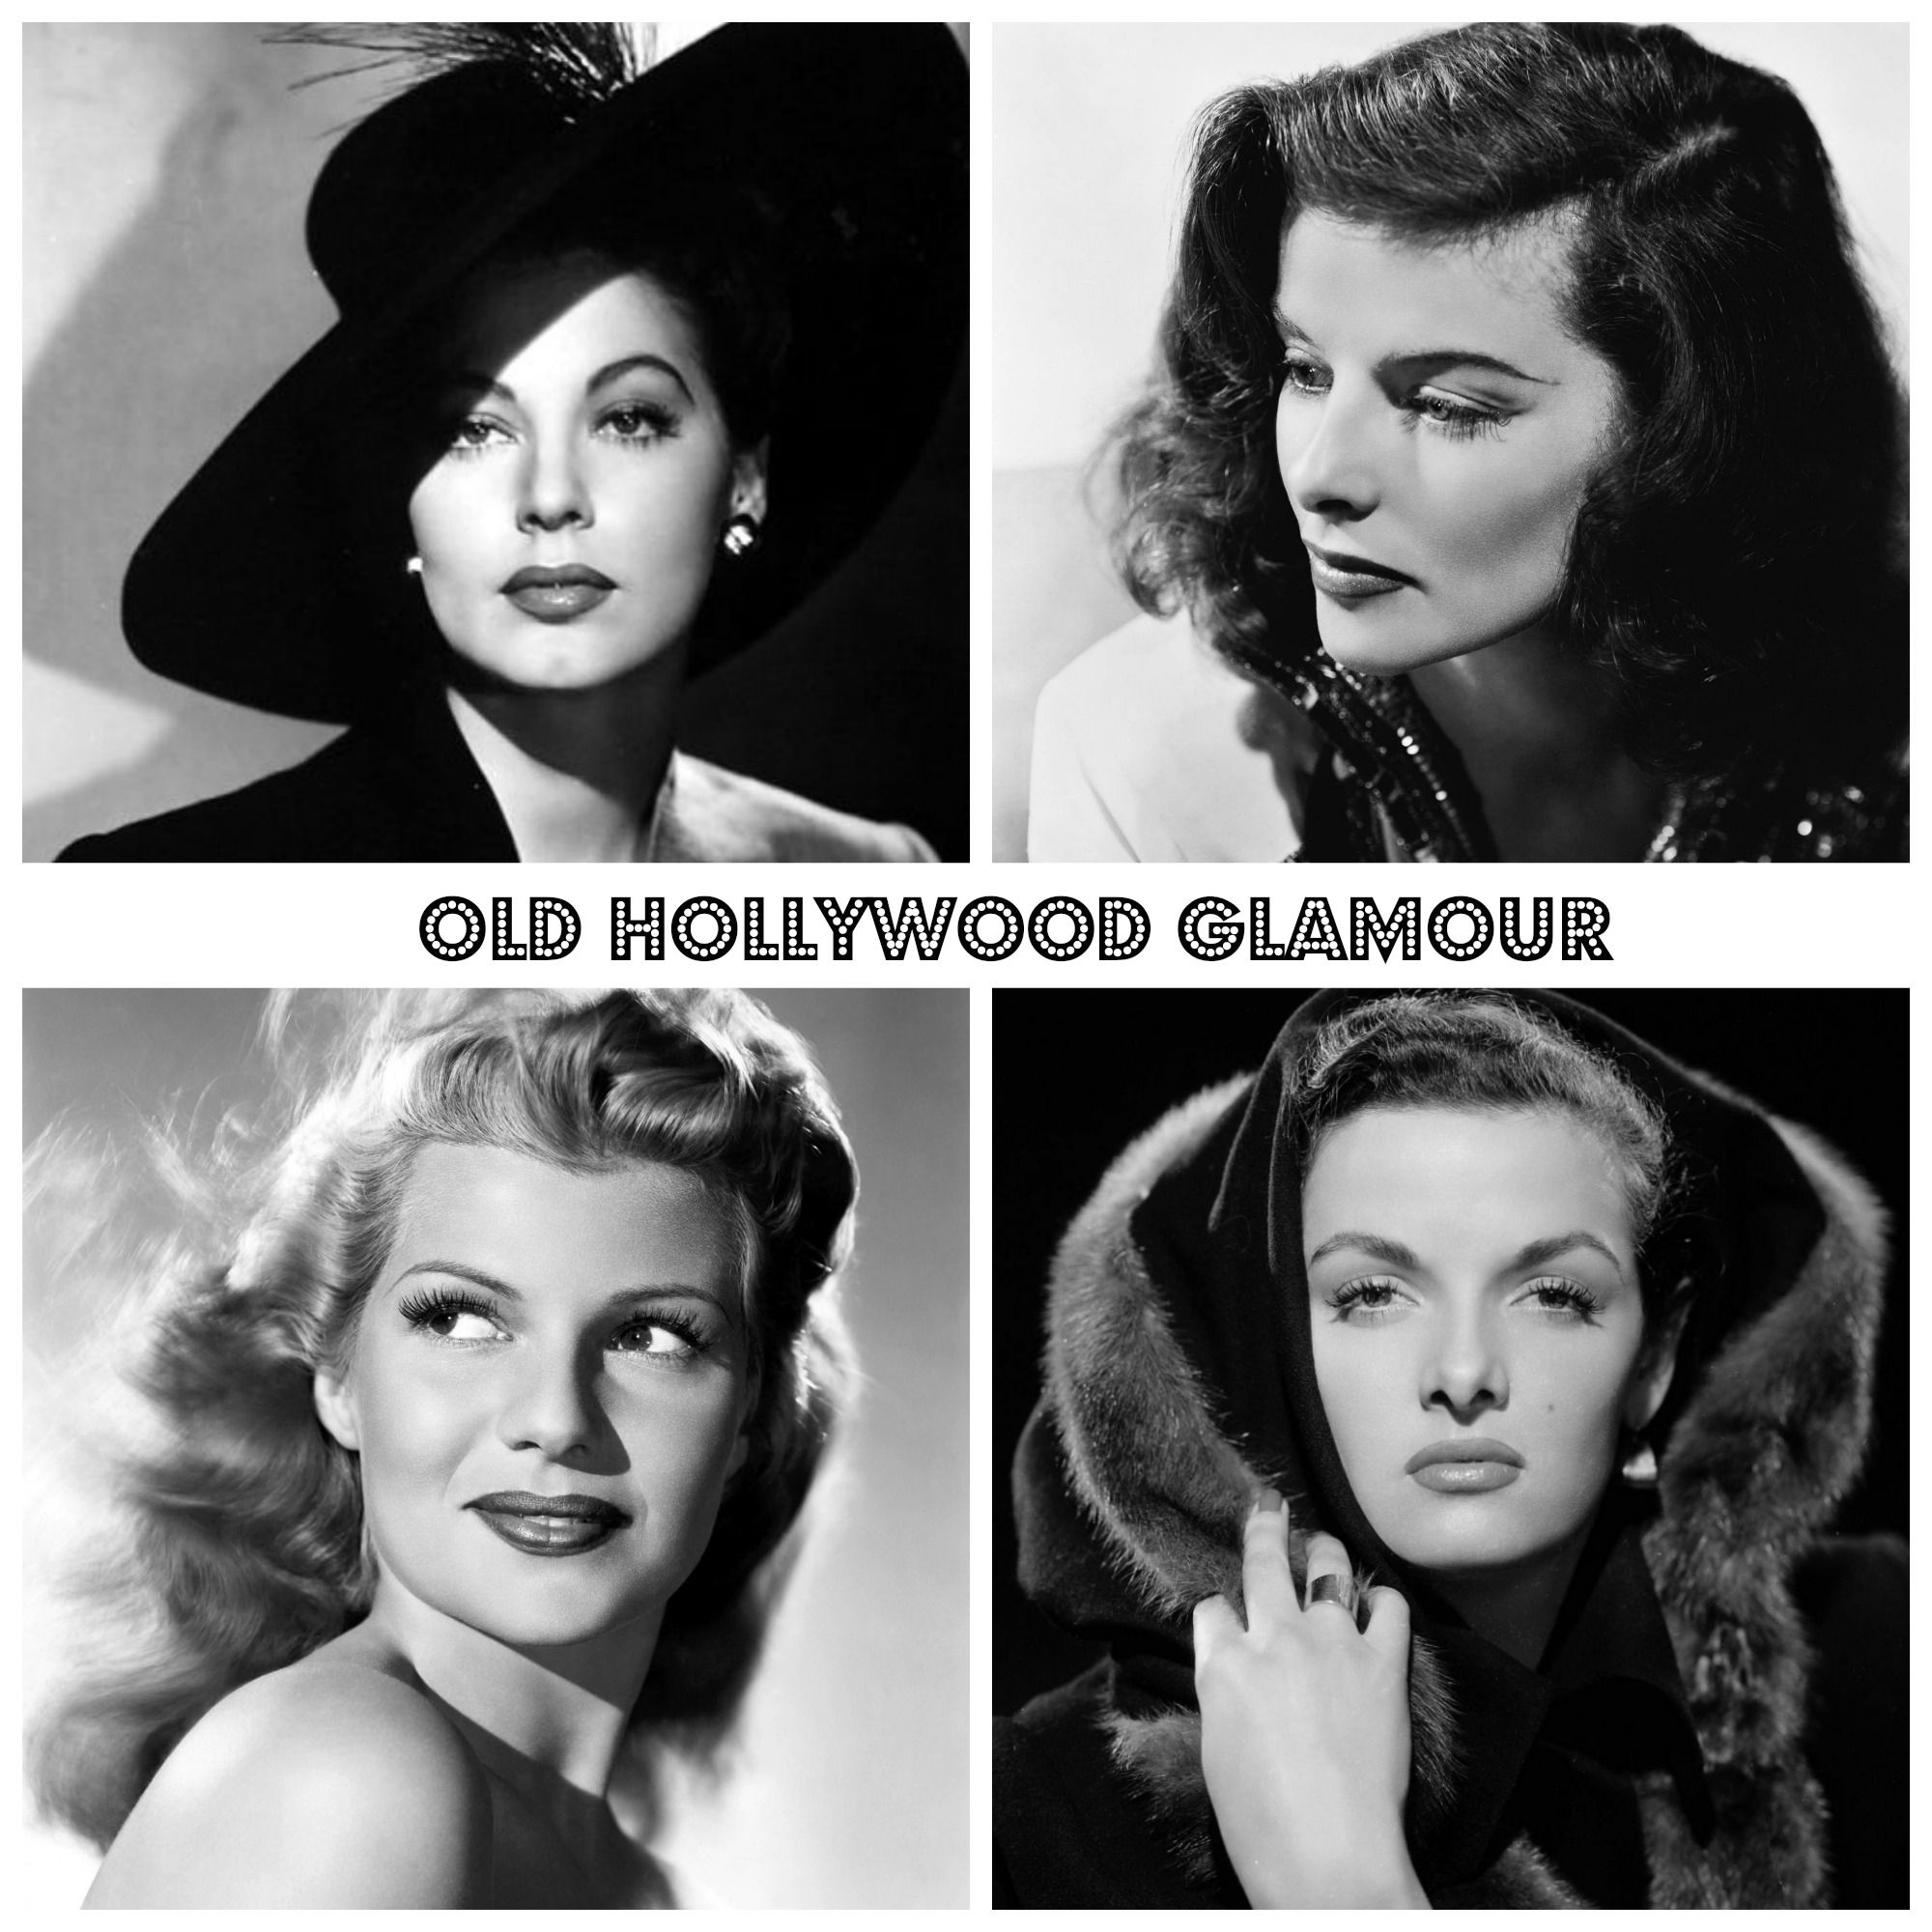 Disney Family Recipes Crafts And Activities Hollywood Glamour Old Hollywood Glamour Old Hollywood